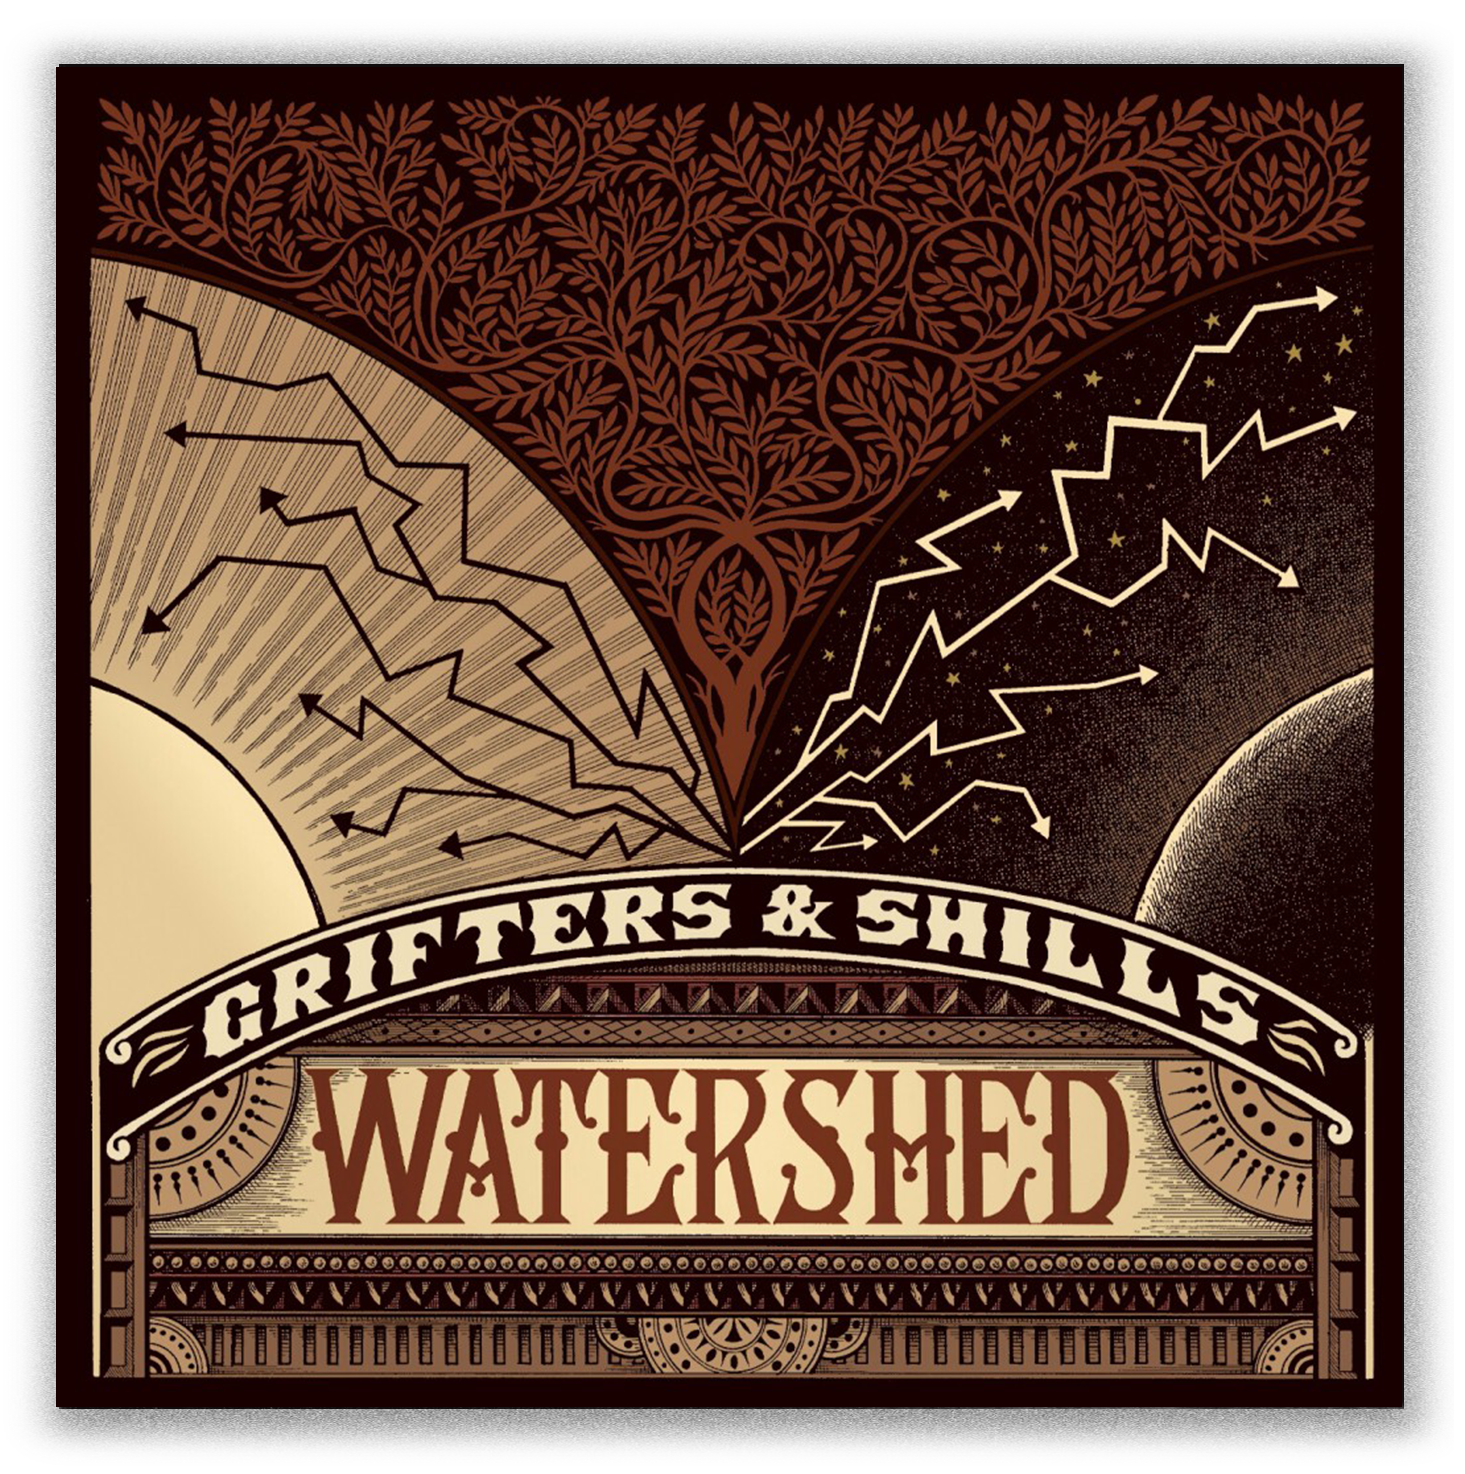 Grifters & Shills – Watershed artwork by Christoph Mueller